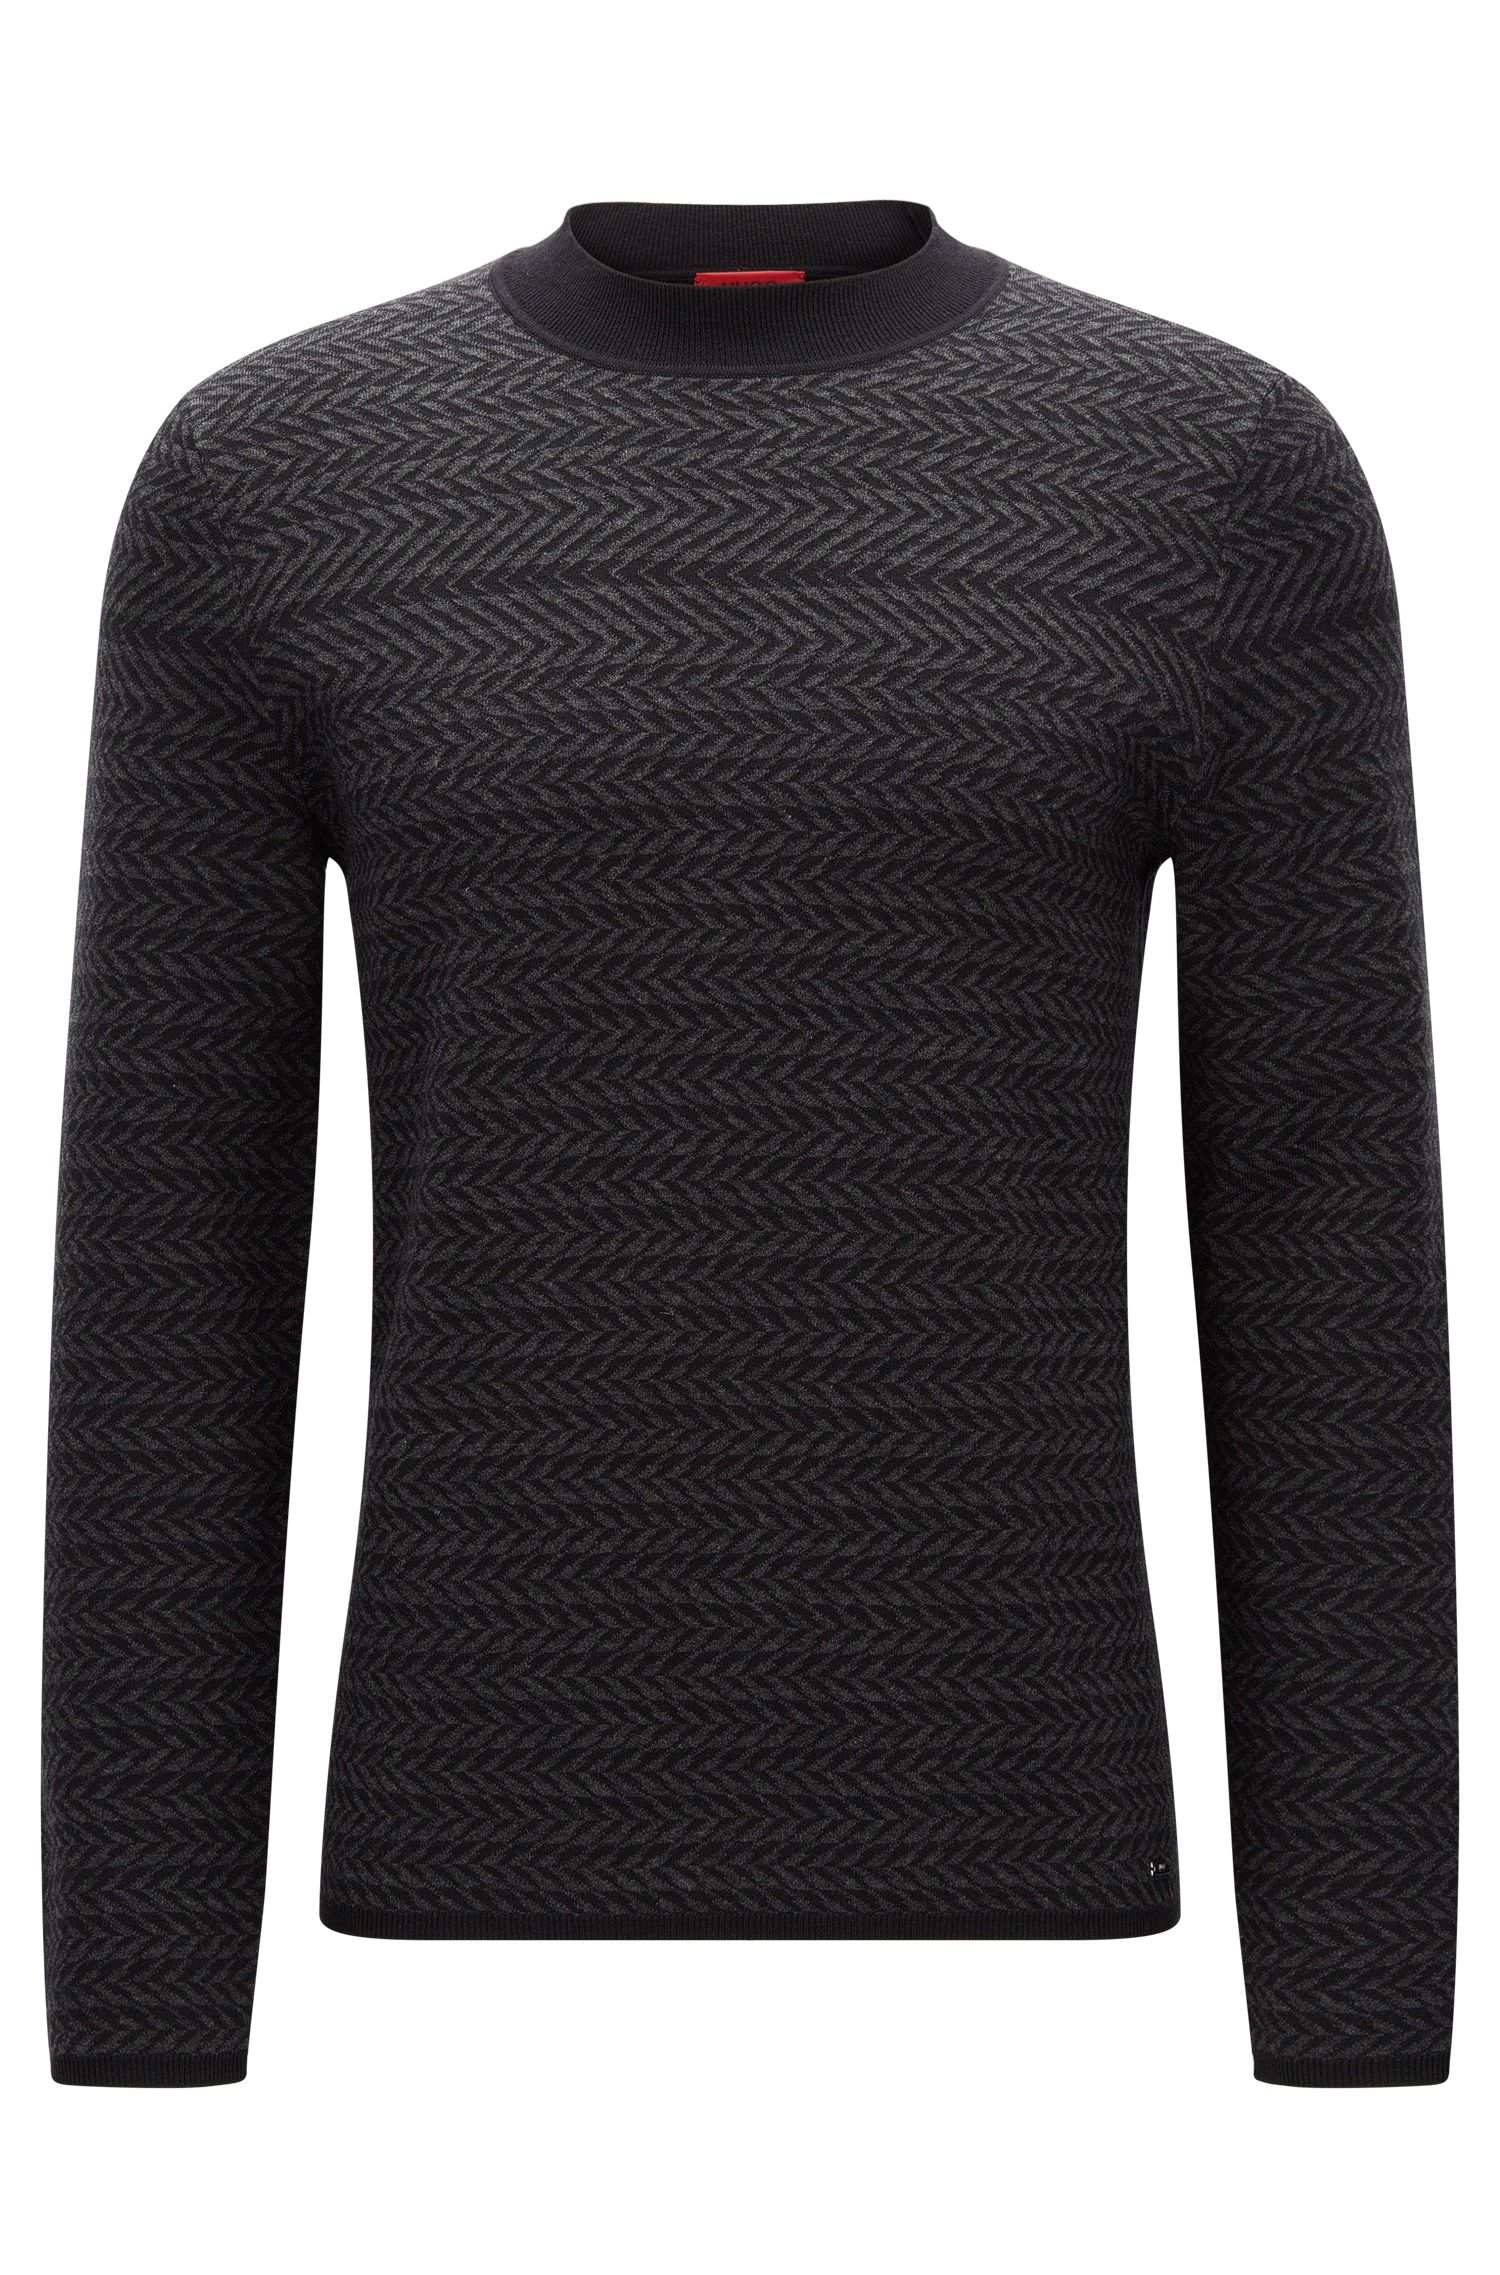 Horizontal structured sweater in a cotton blend